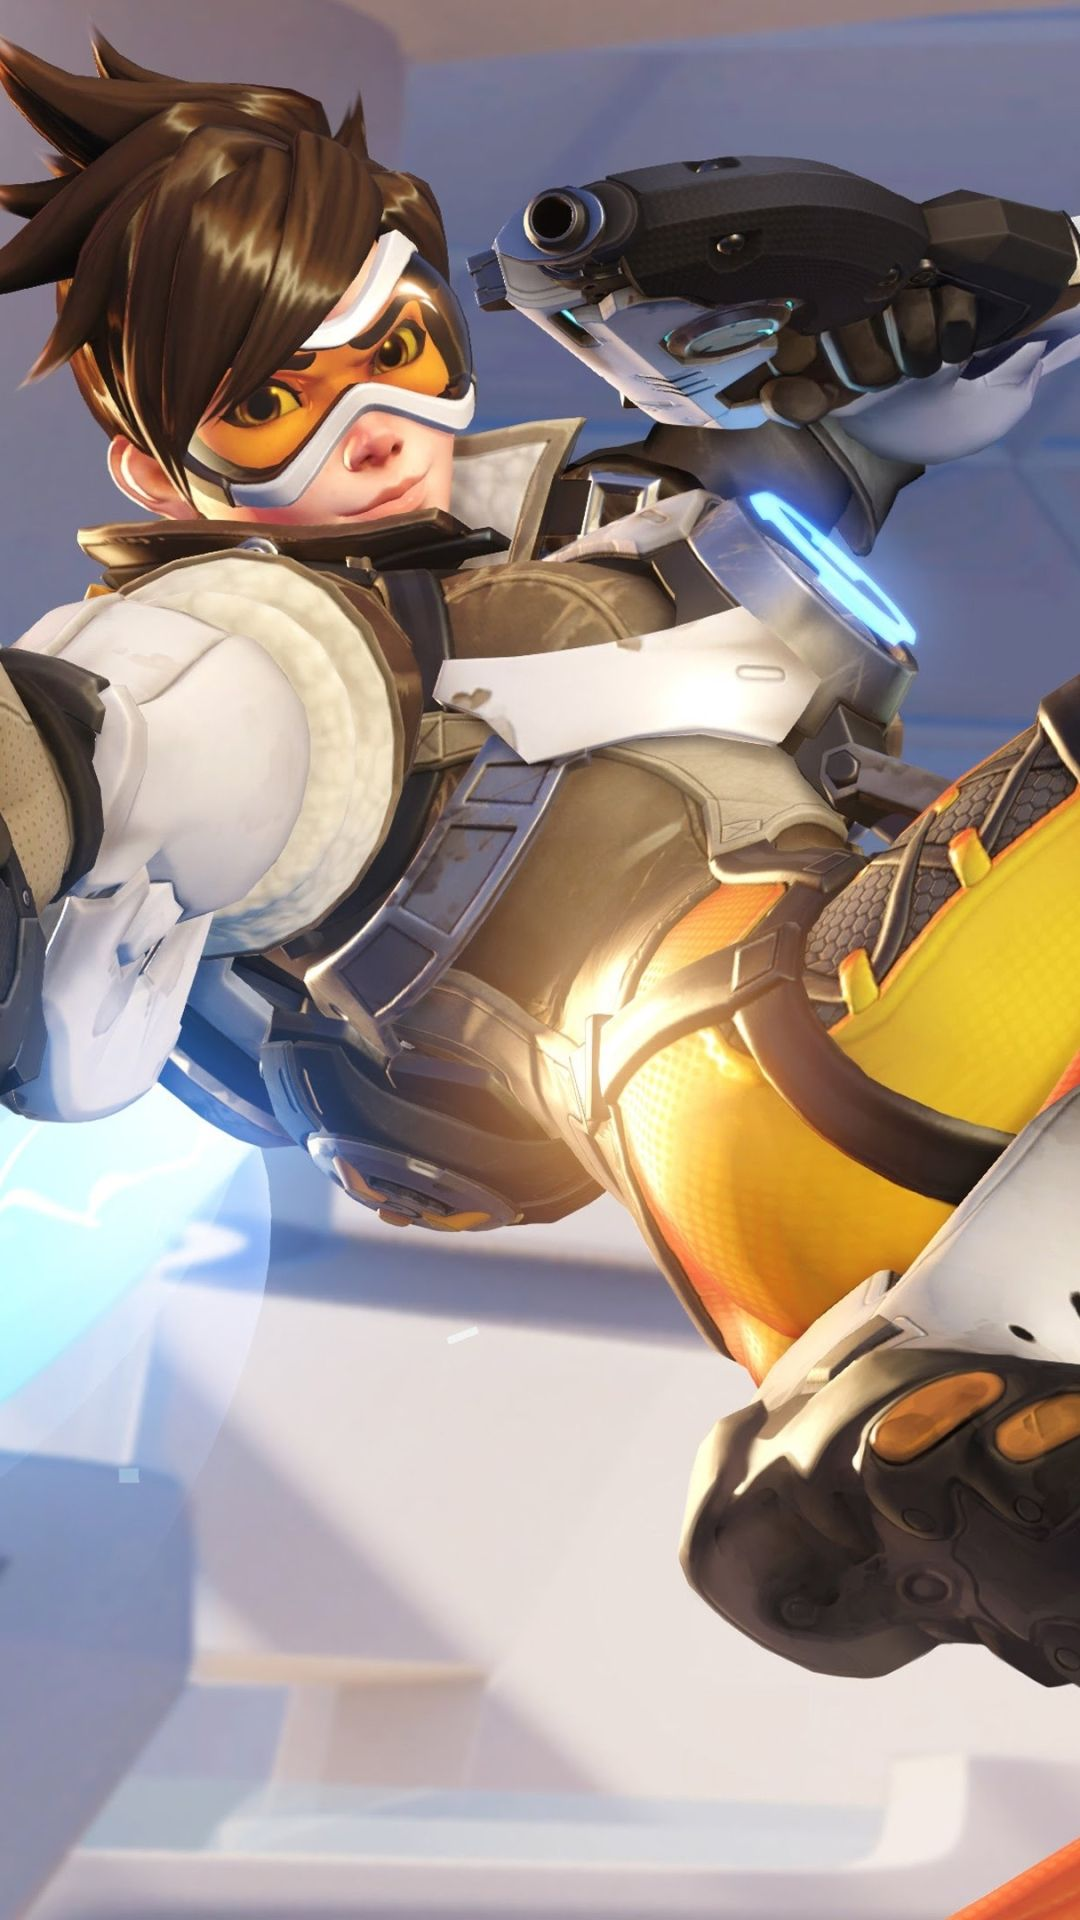 Pin By Mitch Galvin On Overwatch Overwatch Wallpapers Overwatch Overwatch Tracer